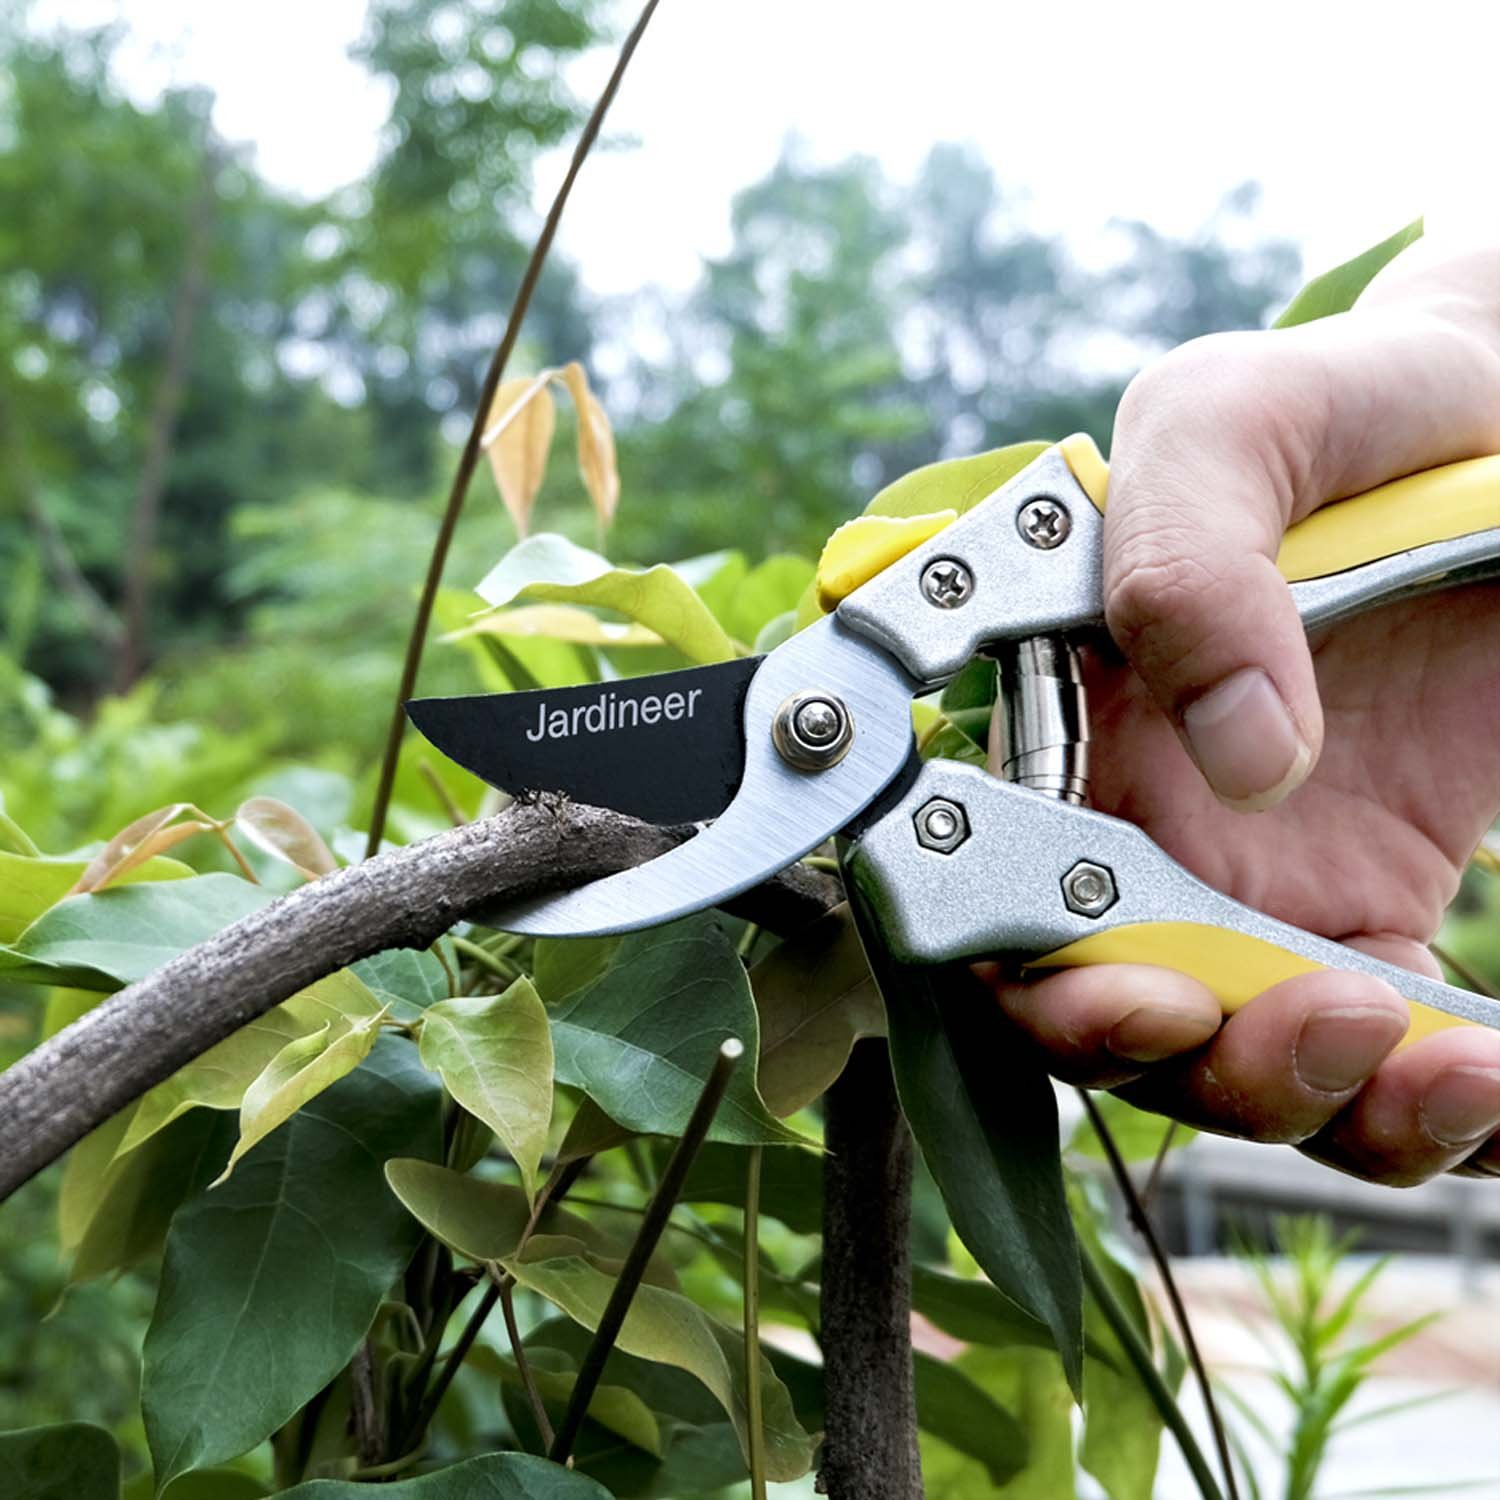 Jardineer Sharp and Durable Hand Bypass Pruners with Safety Lock, Tree Trimmers Secateurs, Garden Pruning Shears for Live Green Plants, Perfect Garden Clippers by Jardineer (Image #6)